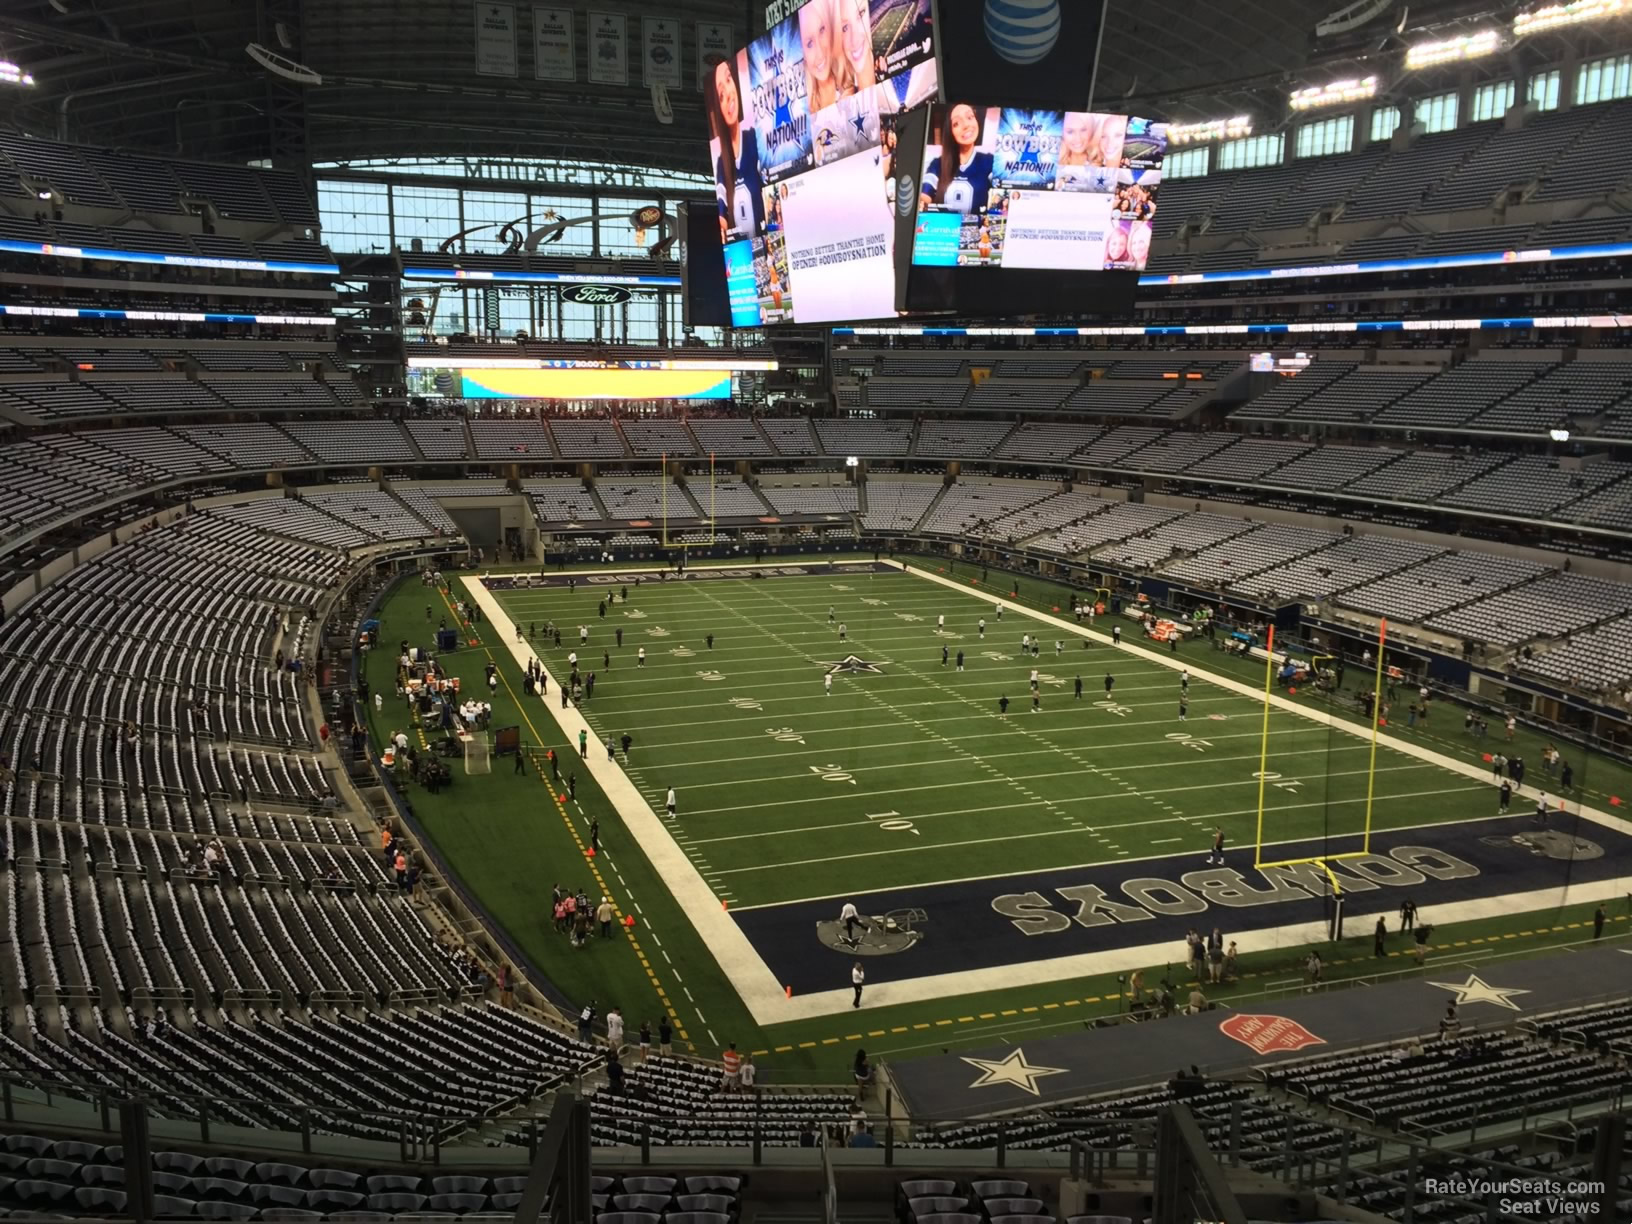 AT&T Stadium Section 327 - Dallas Cowboys - RateYourSeats.com